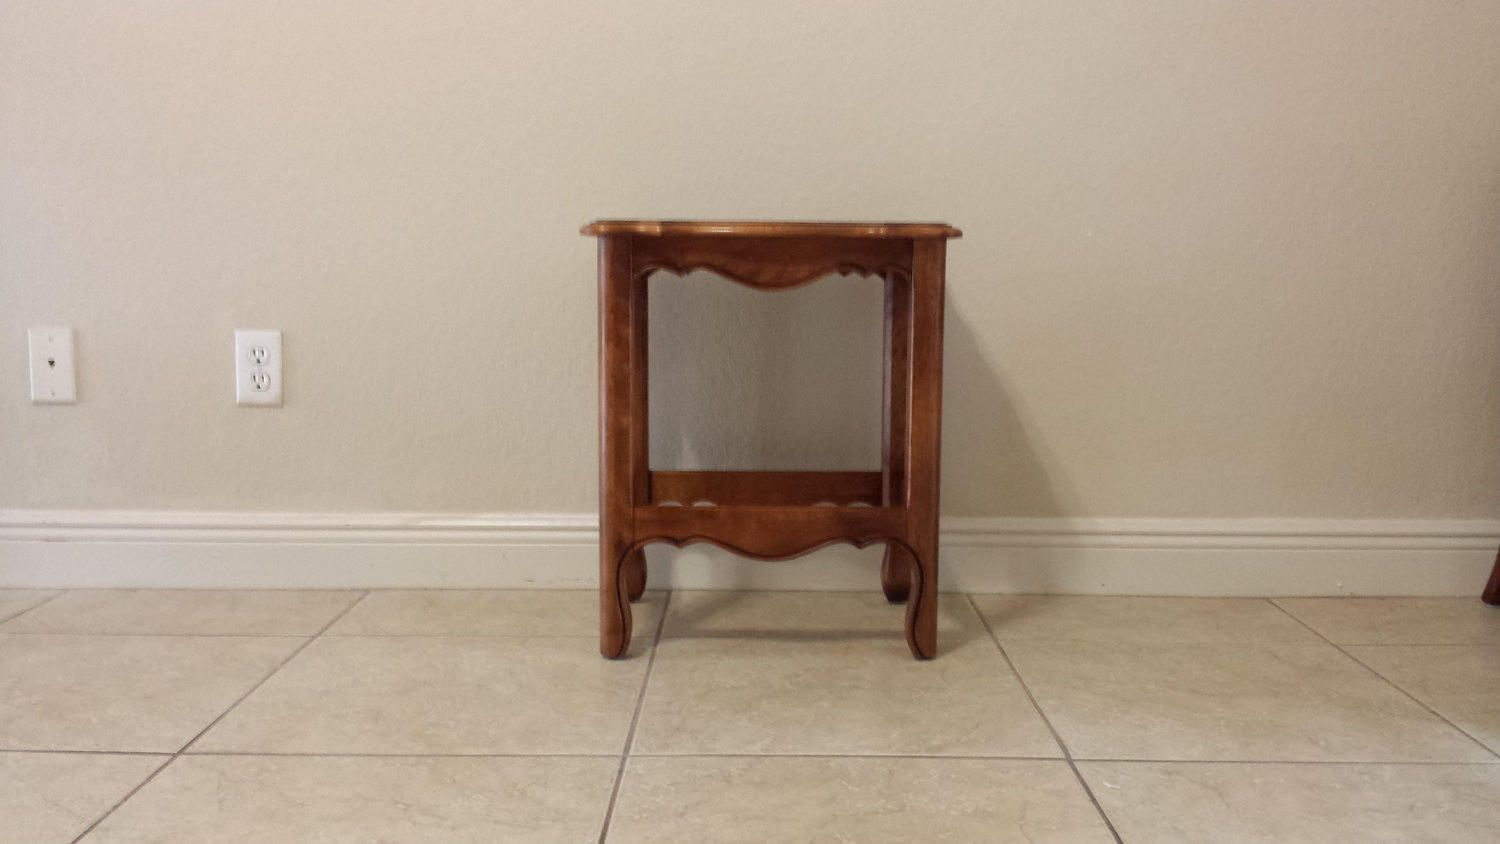 French Country small end table /side table, accent table by DEGFURNITUREDESIGNS on Etsy